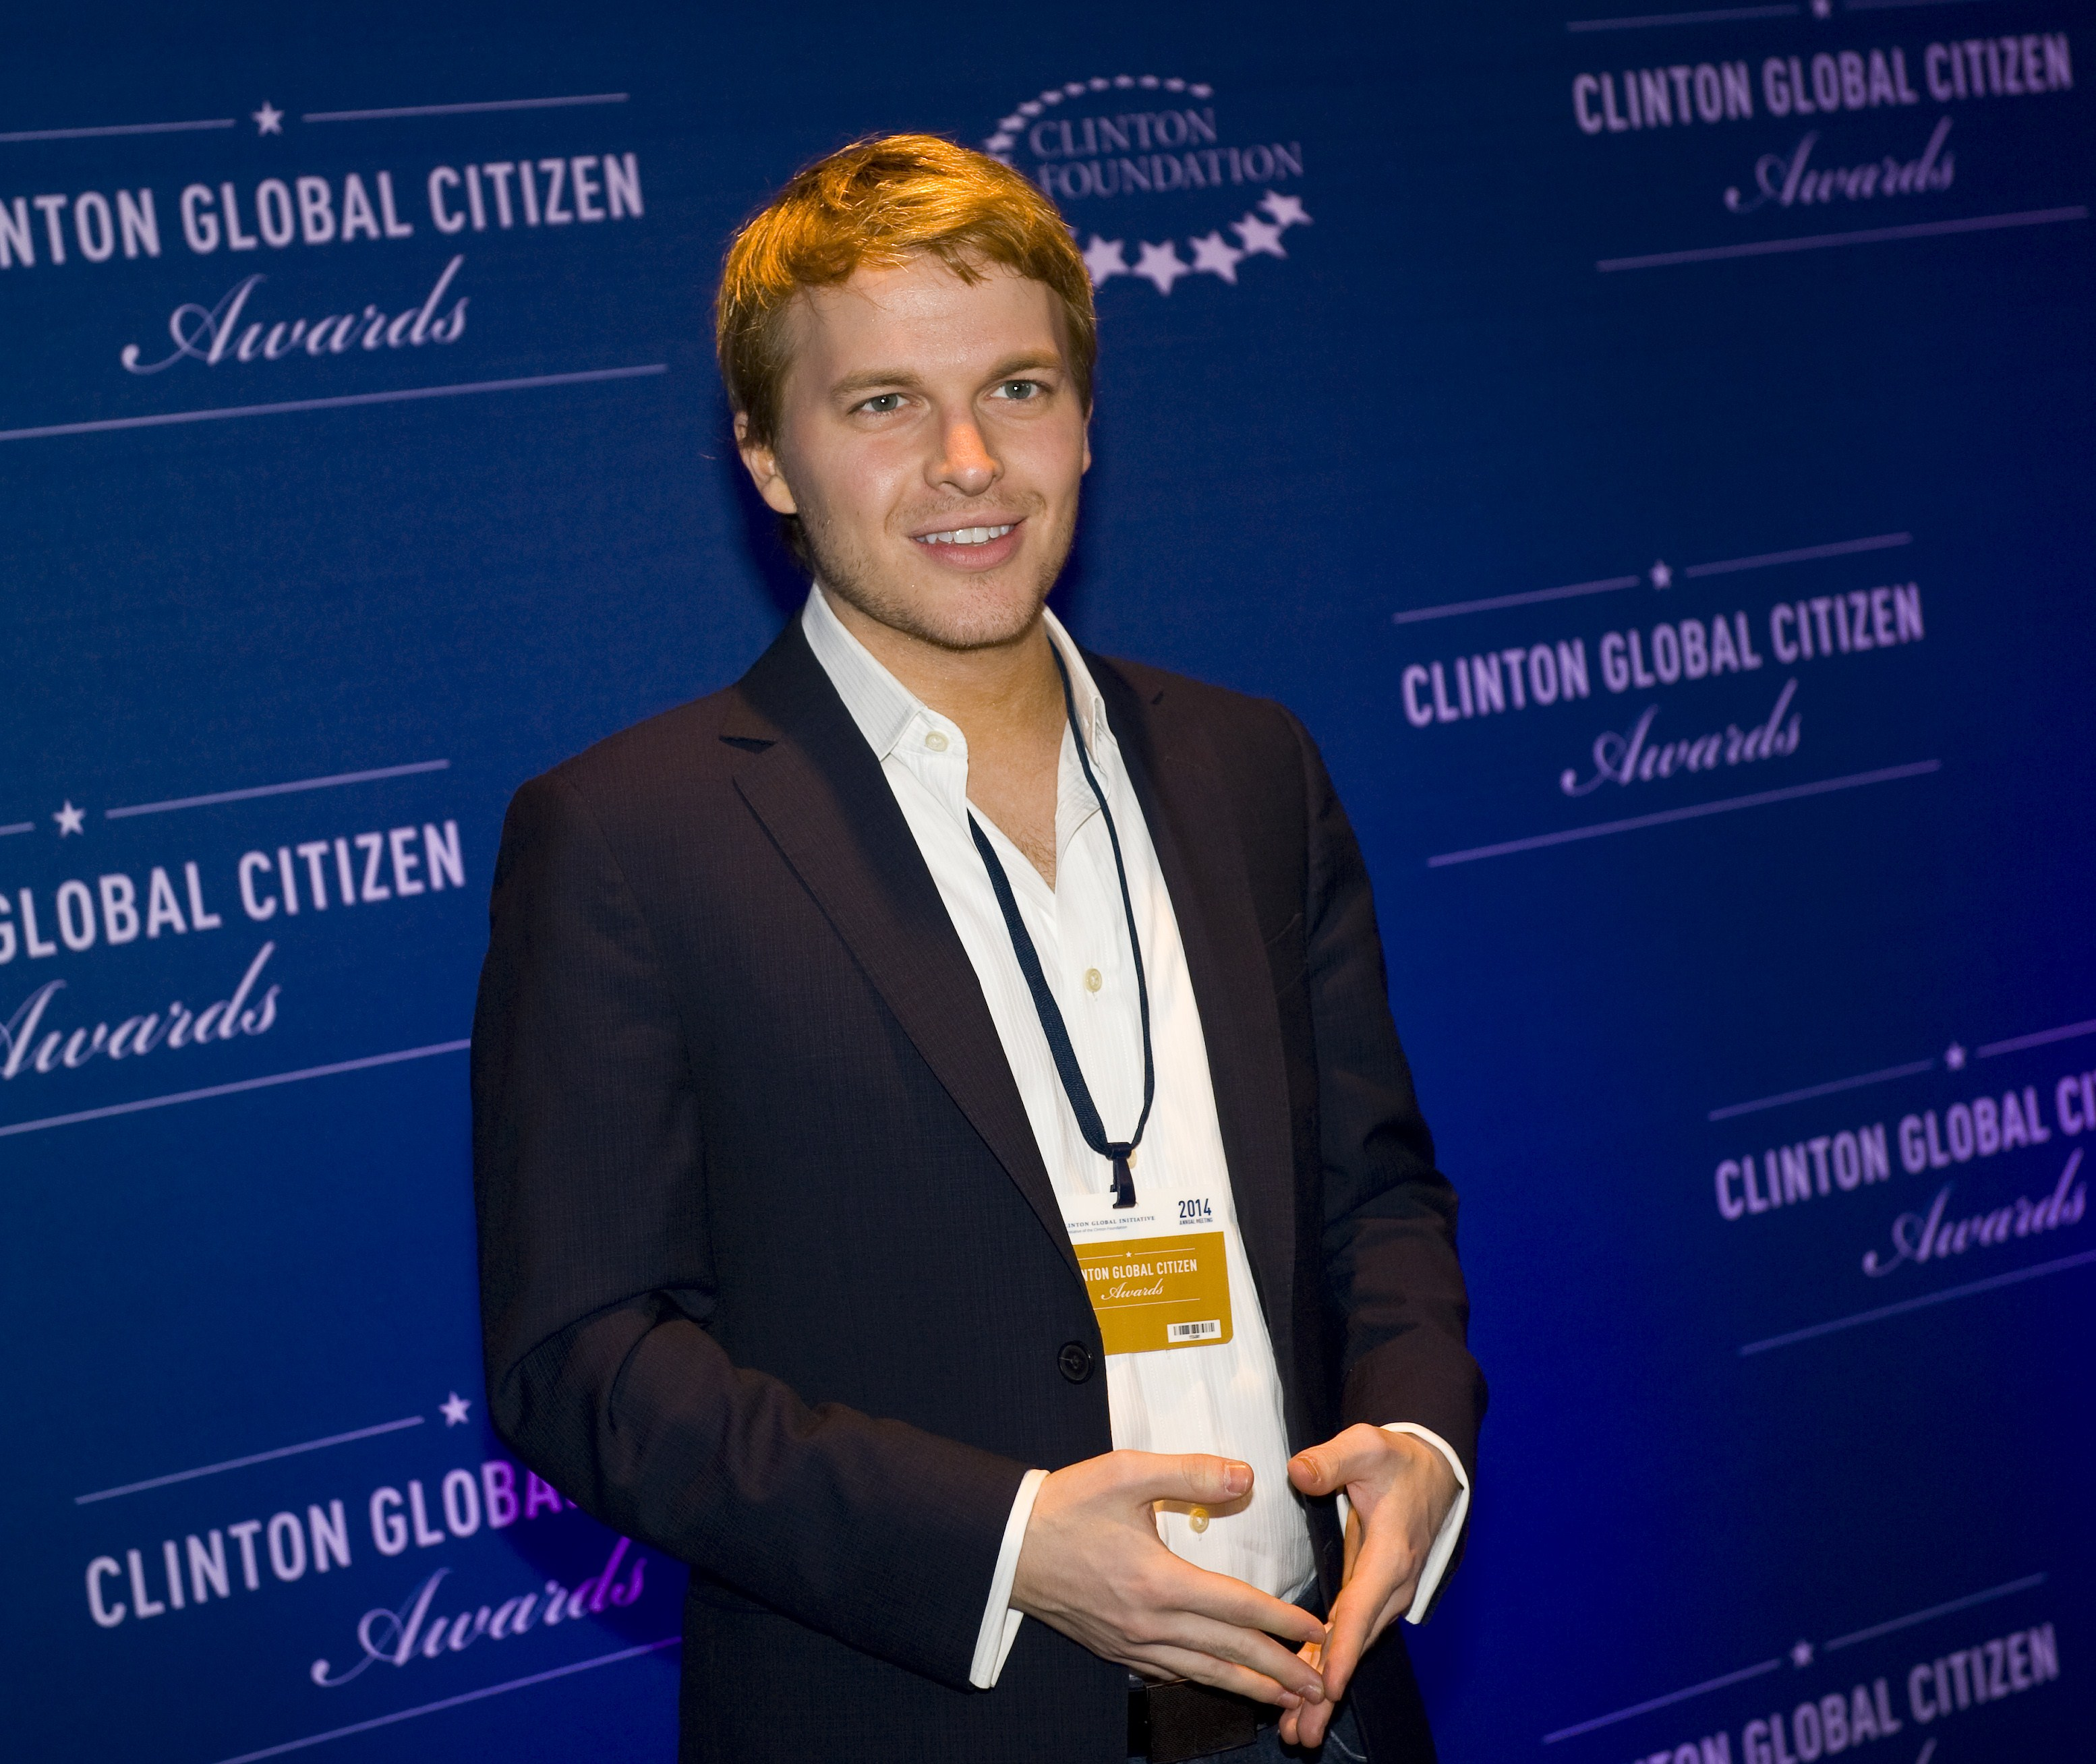 Ronan Farrow, son of actress Mia Farrow attends the 8th Annual Clinton Global Citizen Awards ceremony in New York September 21, 2014. (Photo: STEPHEN CHERNIN/AFP via Getty Images)